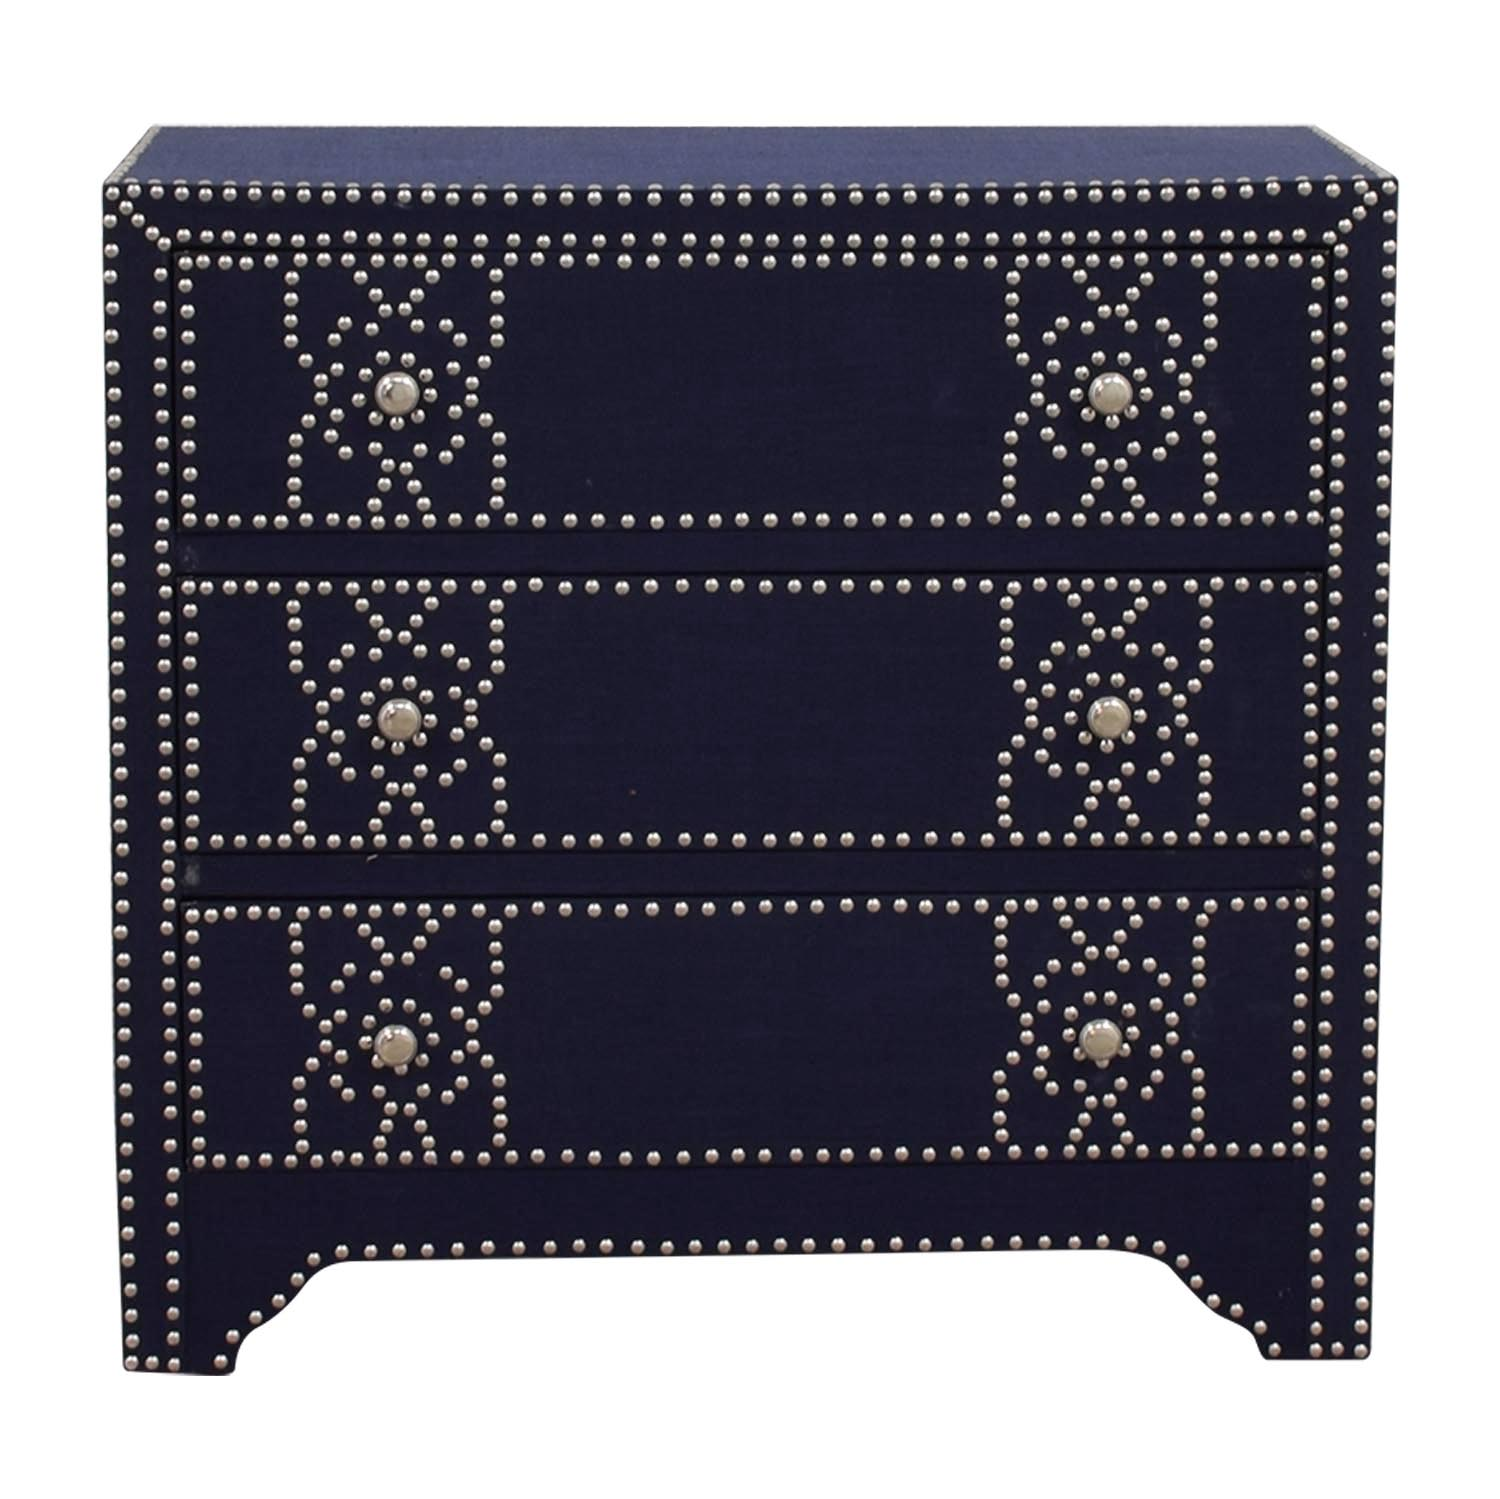 buy Pier 1 Imports Denim Fabric Lexford Chest with Nailheads Pier 1 Imports